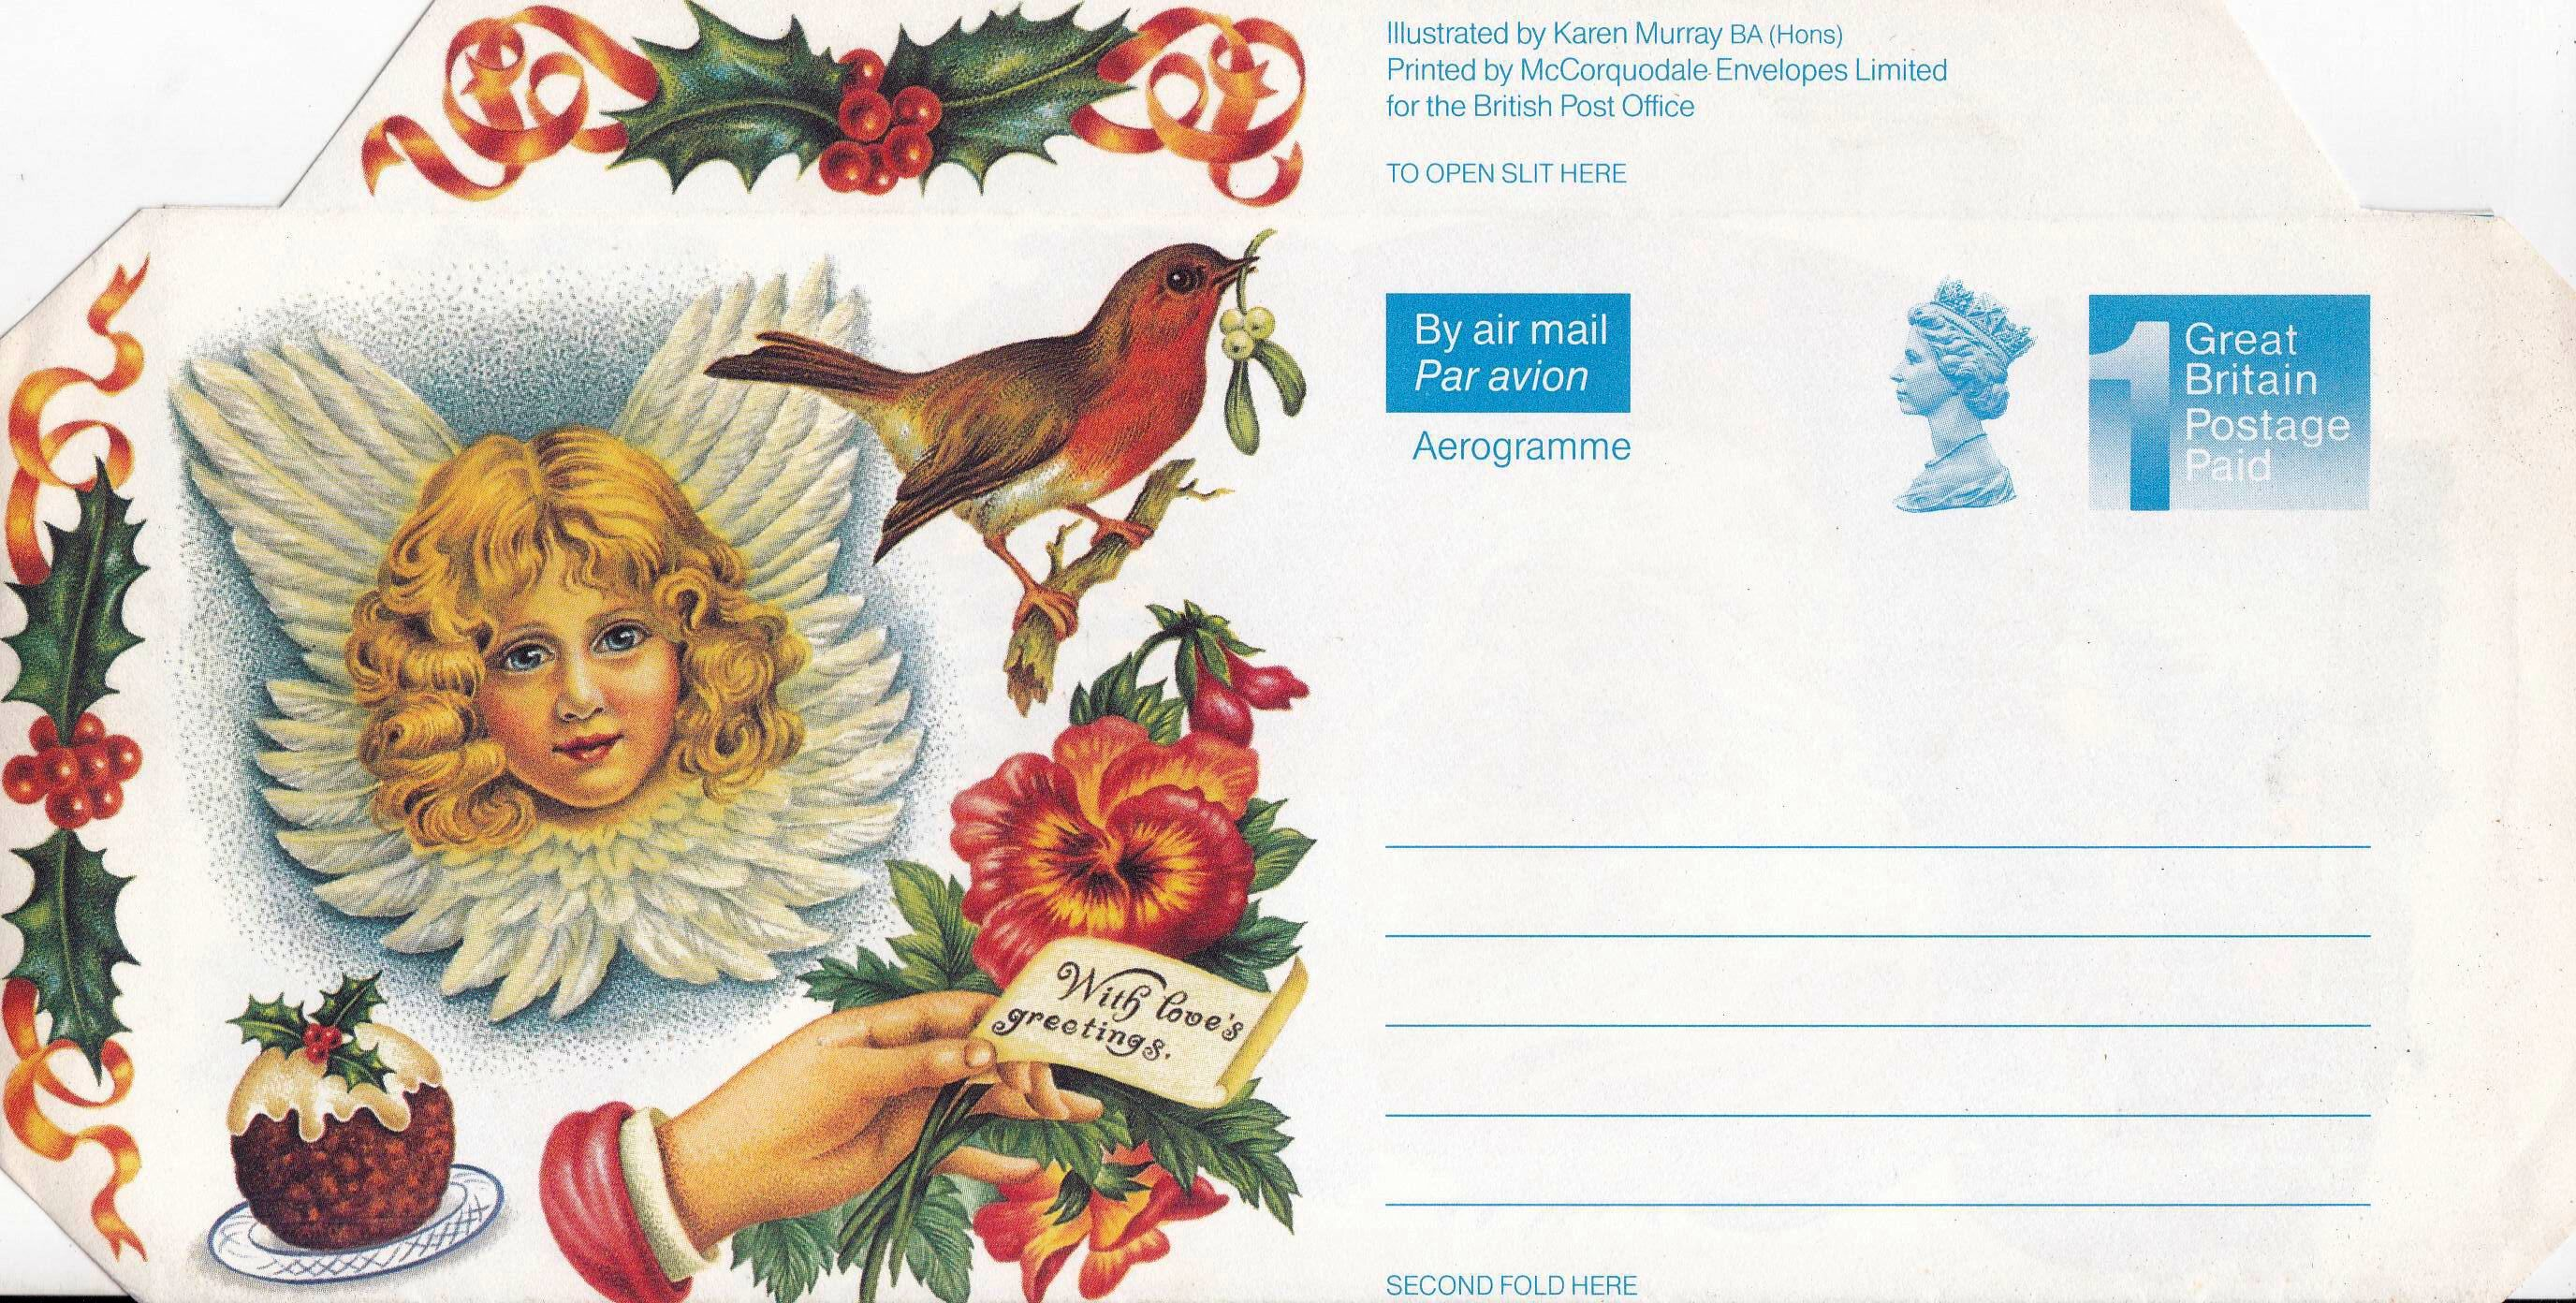 Great Britain 1992 Postal Stationey Aerogramme Christmas